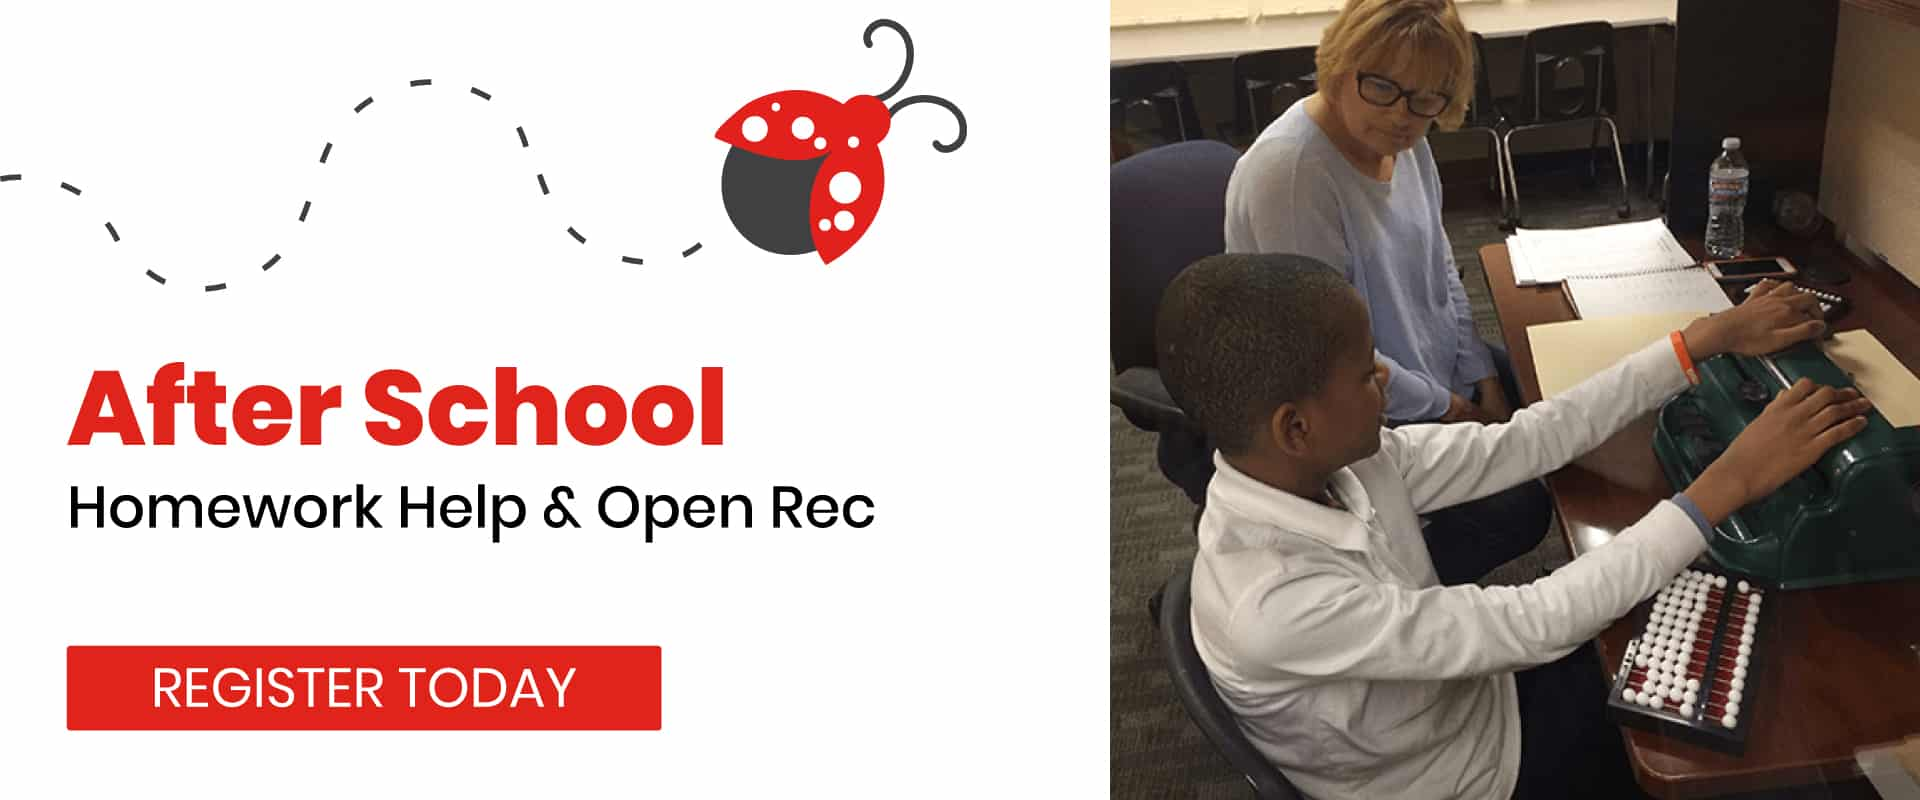 Register Today for After School programs including homework help and open rec